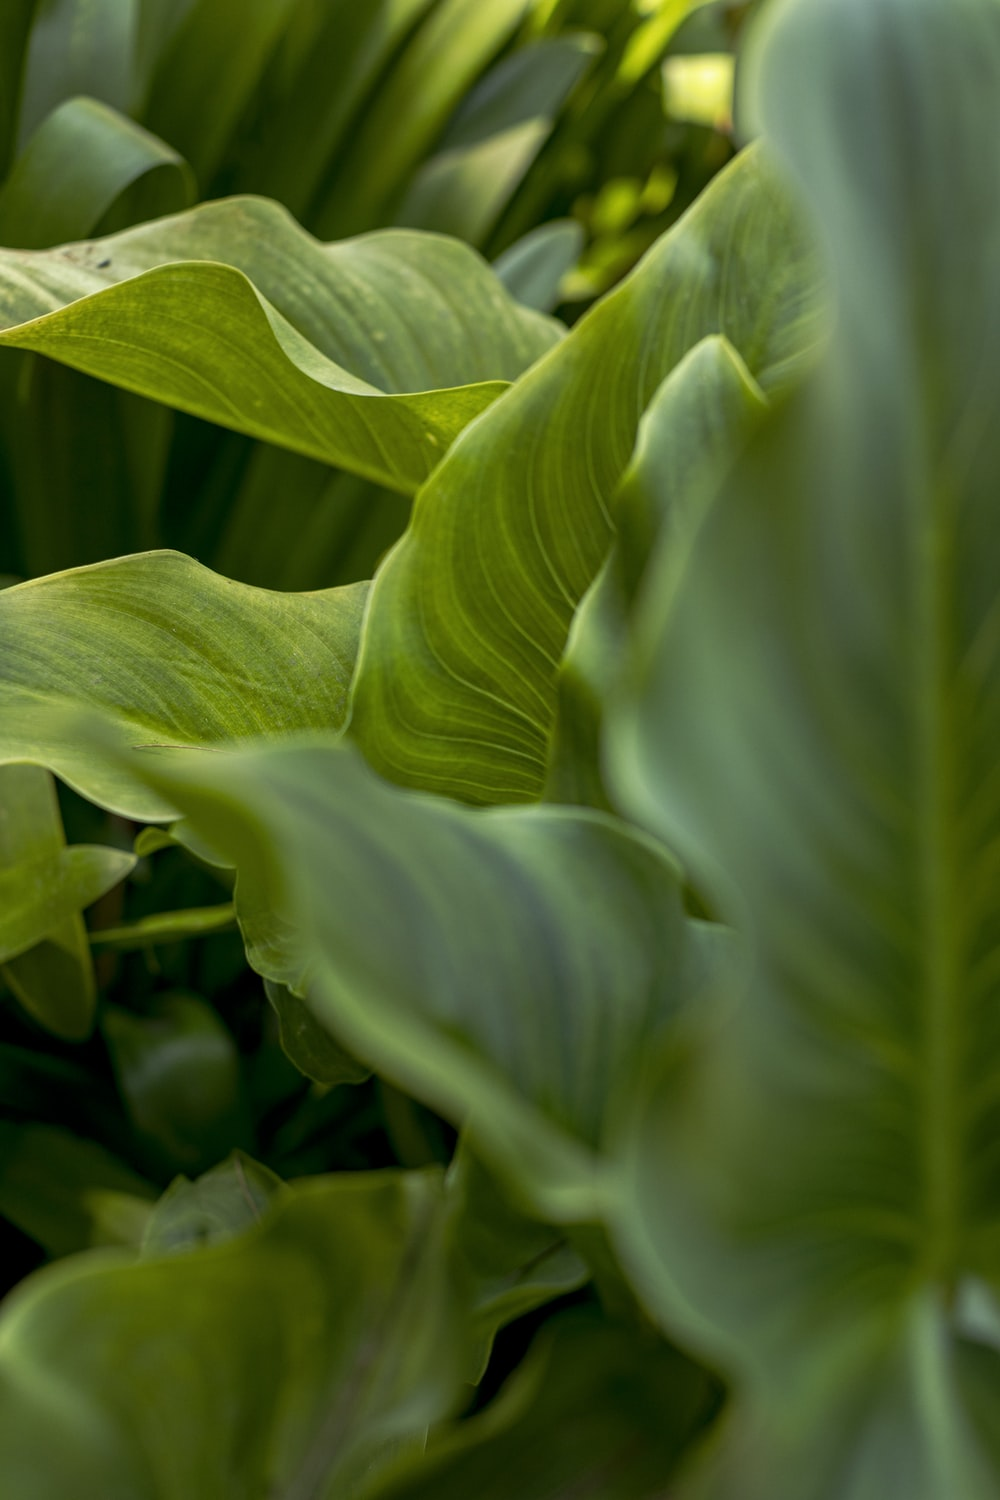 selective focus photo of green-leafed plant